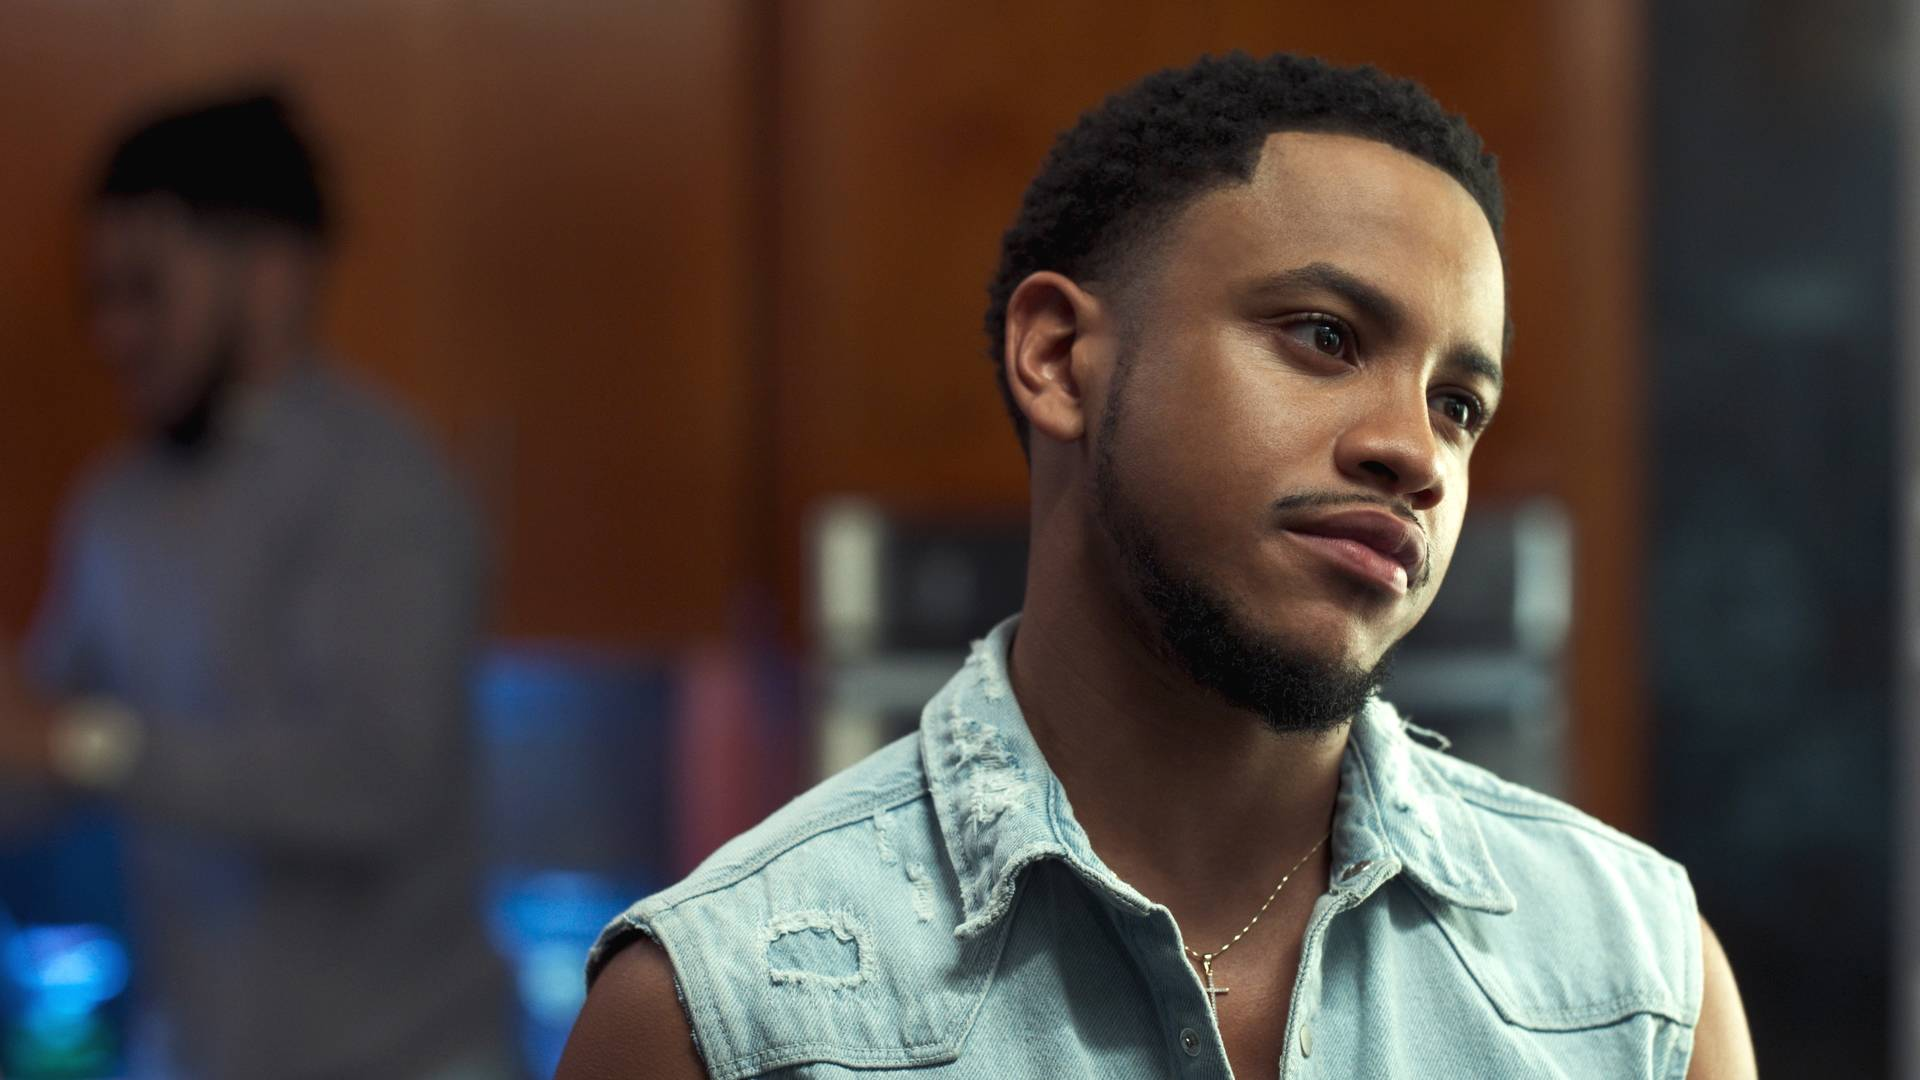 Tequan Richmond looks unbothered. - (Photo: BET)